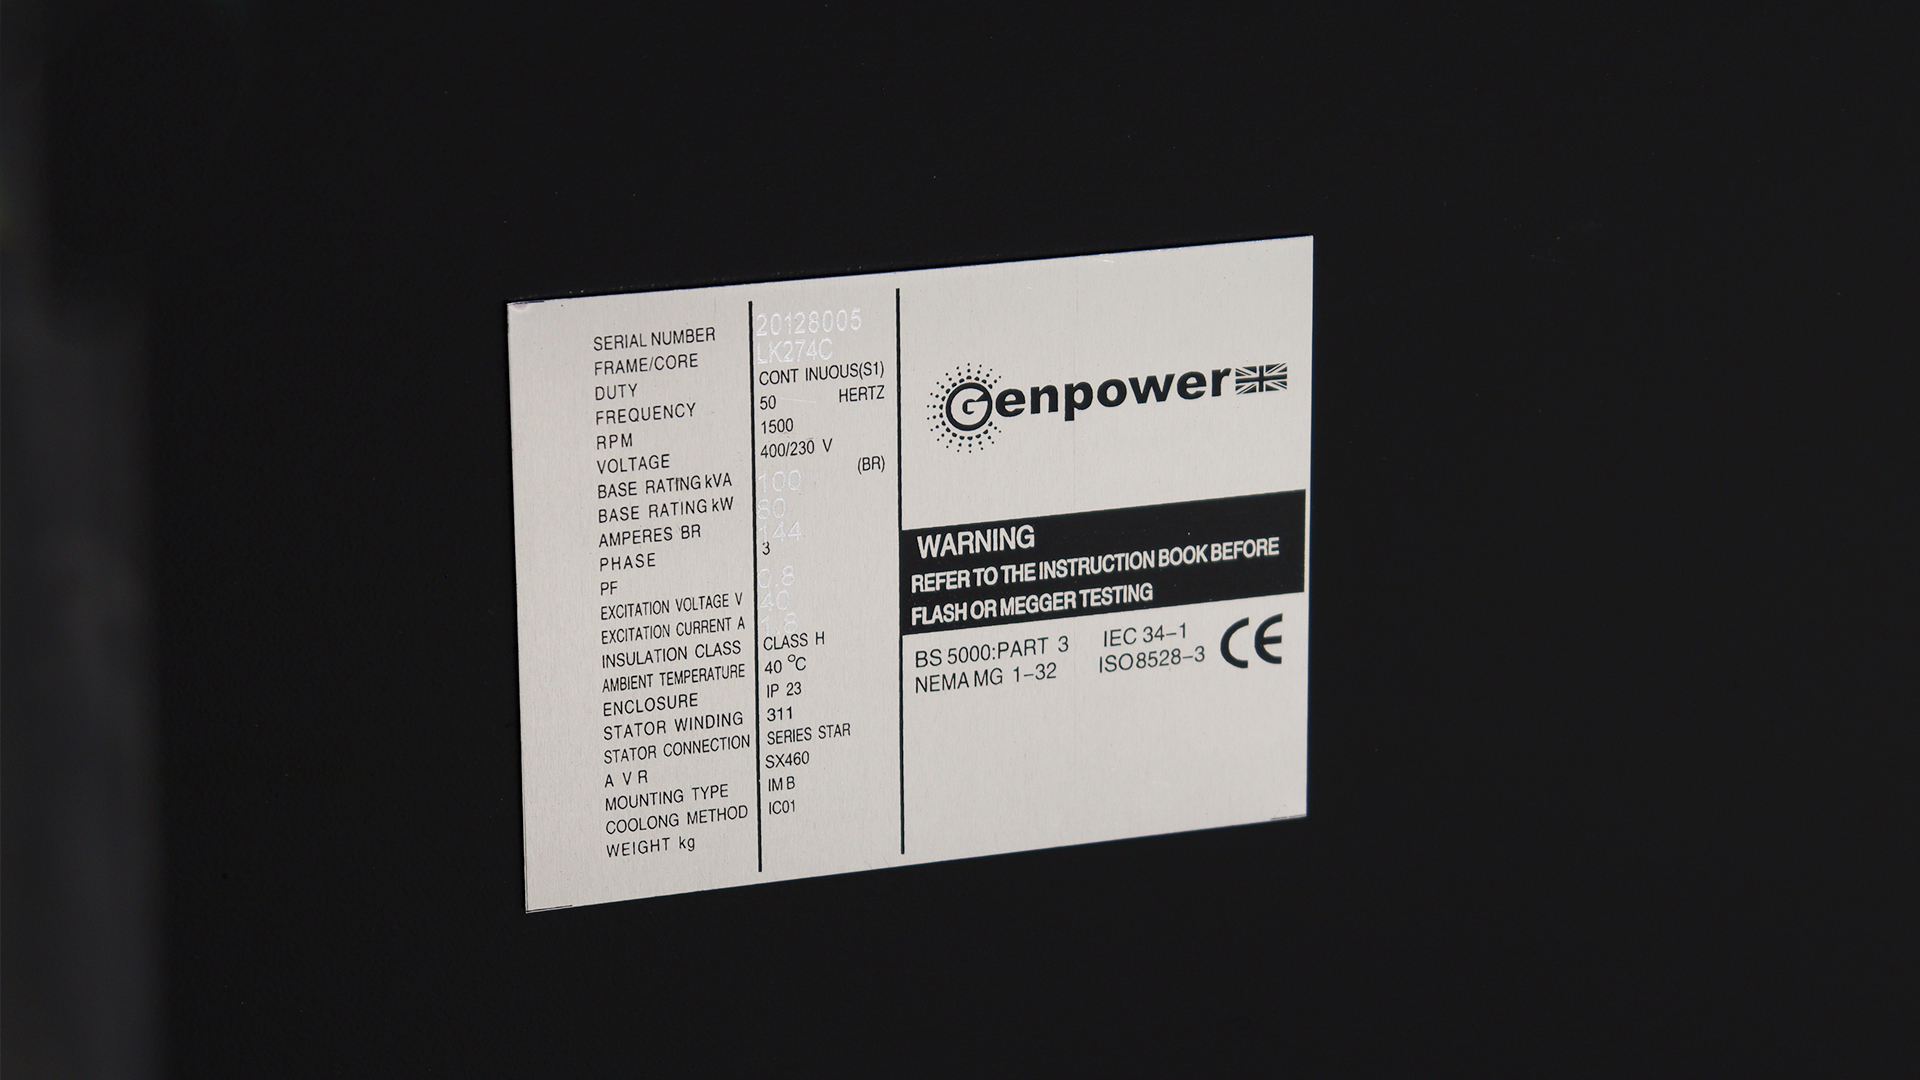 Label for the Genpower alternator fitted on the genset